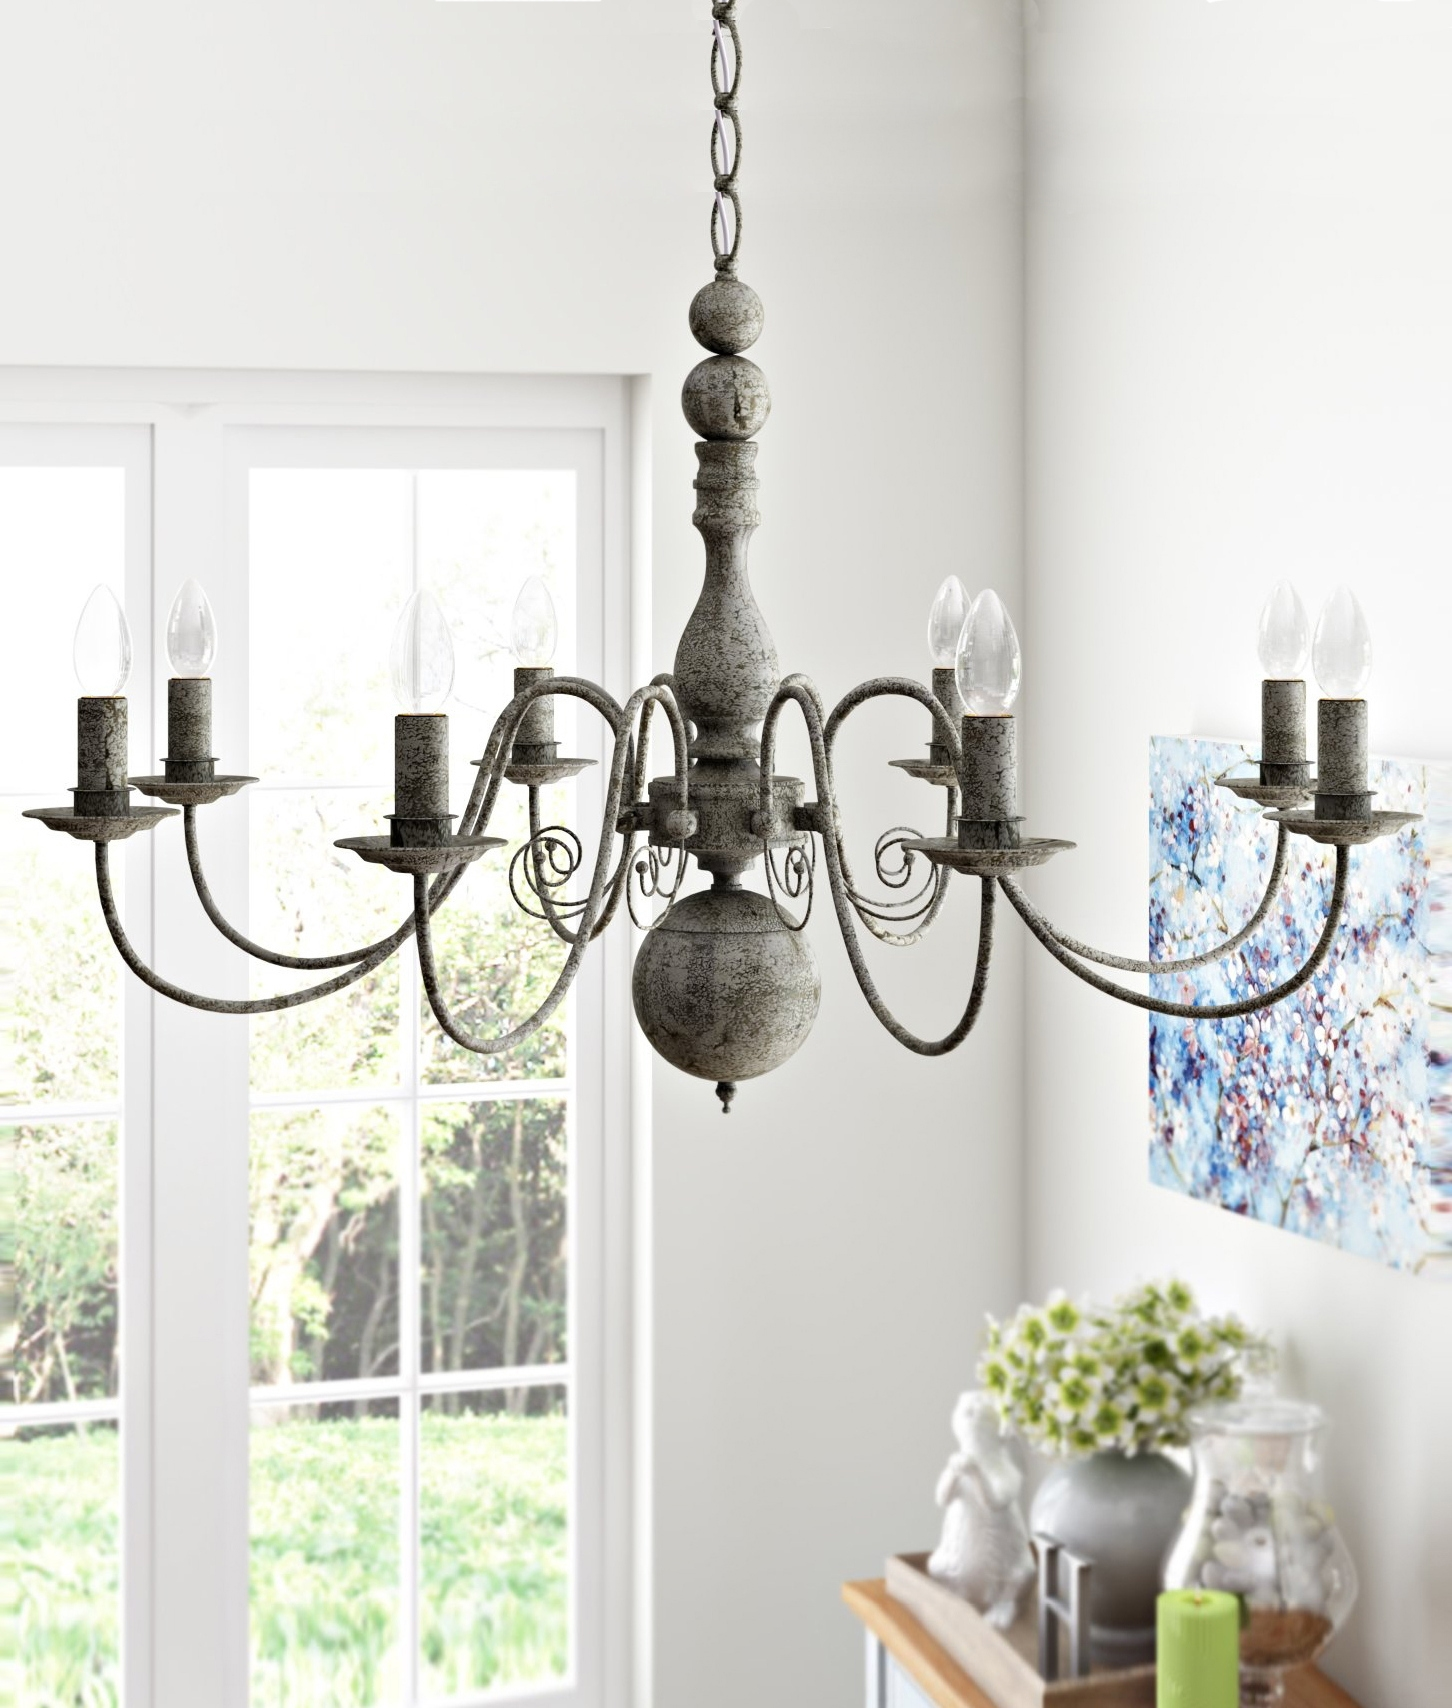 Textured grey flemish chandelier vintage styling vintage textured grey flemish chandelier available as a 5 or 8 arm option arubaitofo Gallery